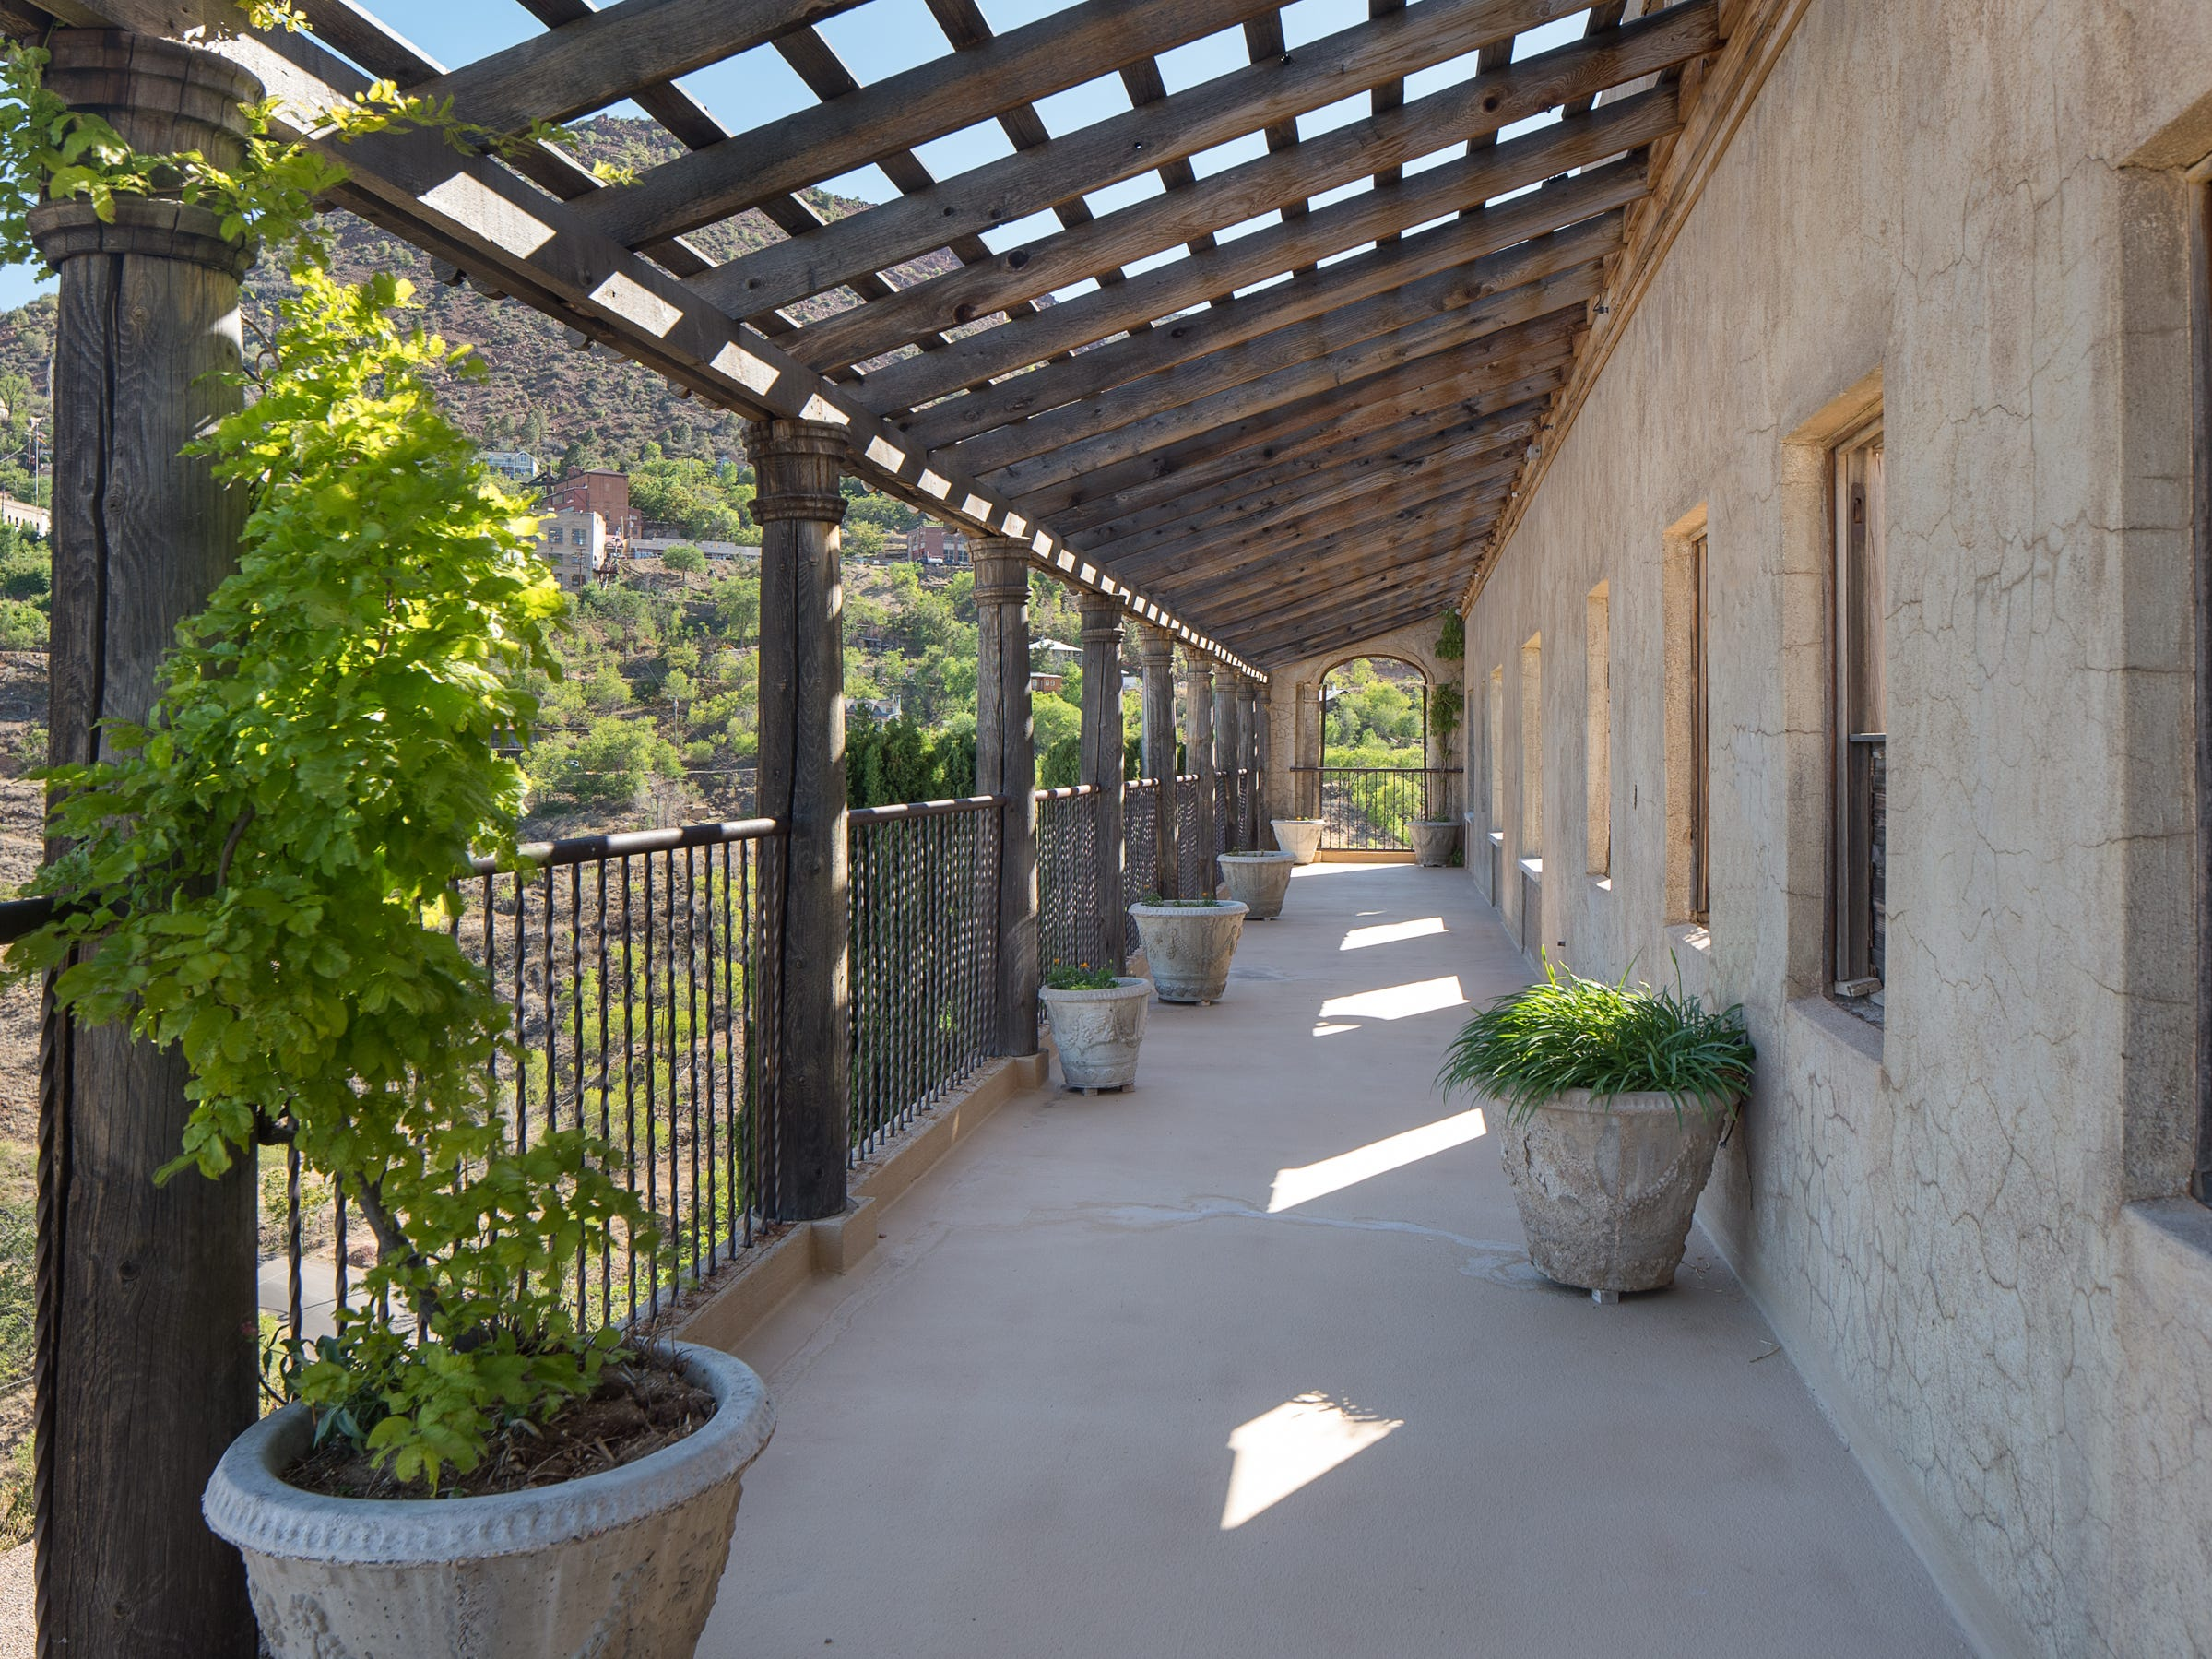 The colonnade that faces toward the town of Jerome is seen at the 100-year-old former Little Daisy Hotel in Jerome, which was later turned into a single-family home and is now on the market.